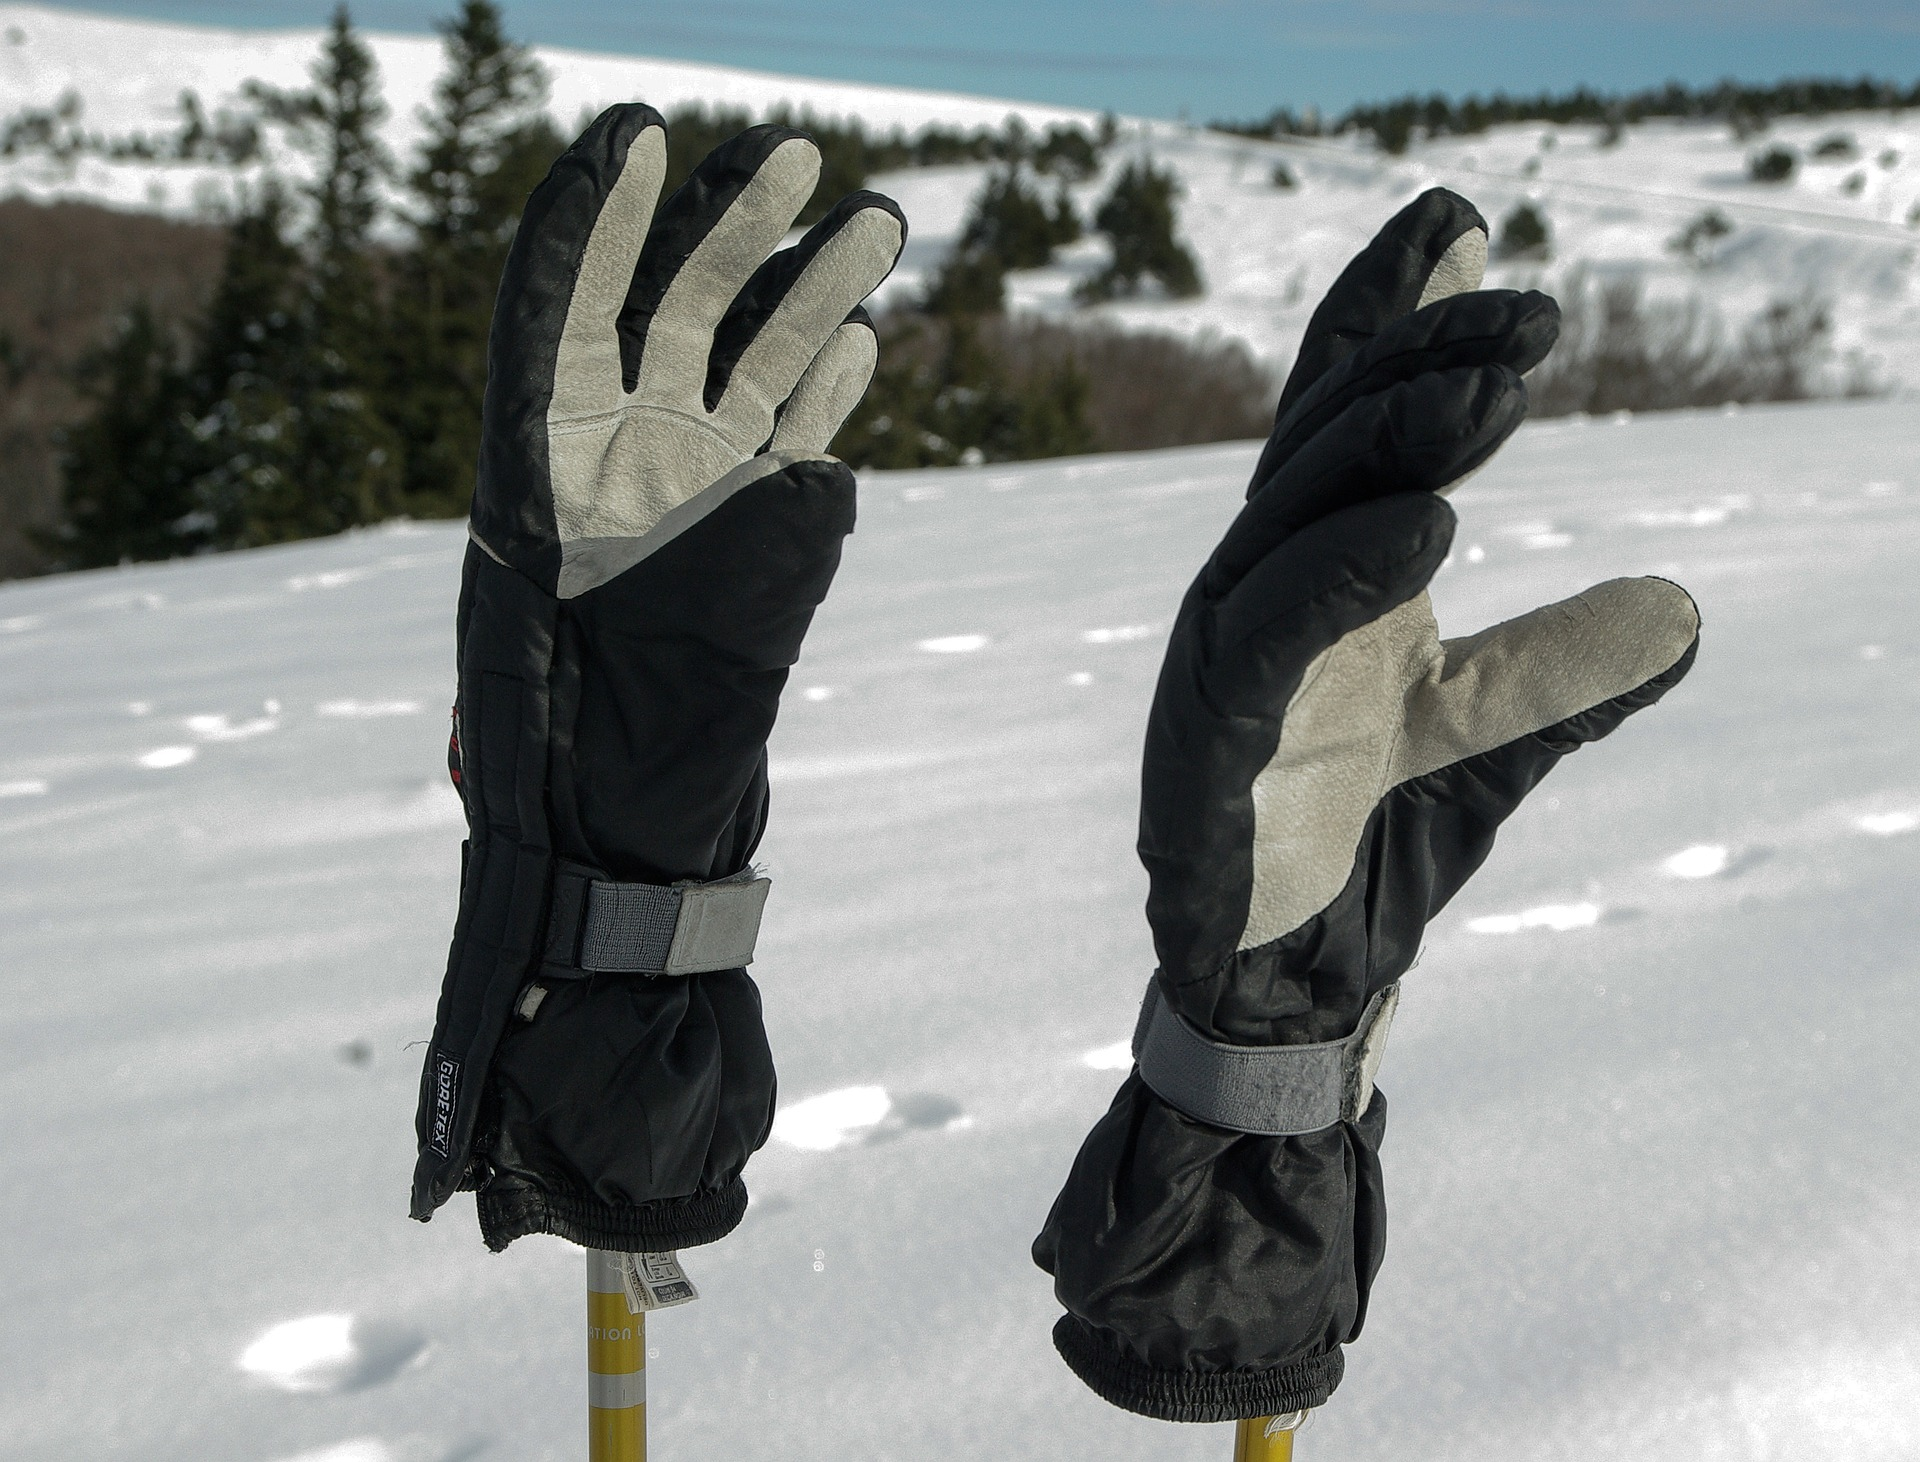 Gloves on ski poles